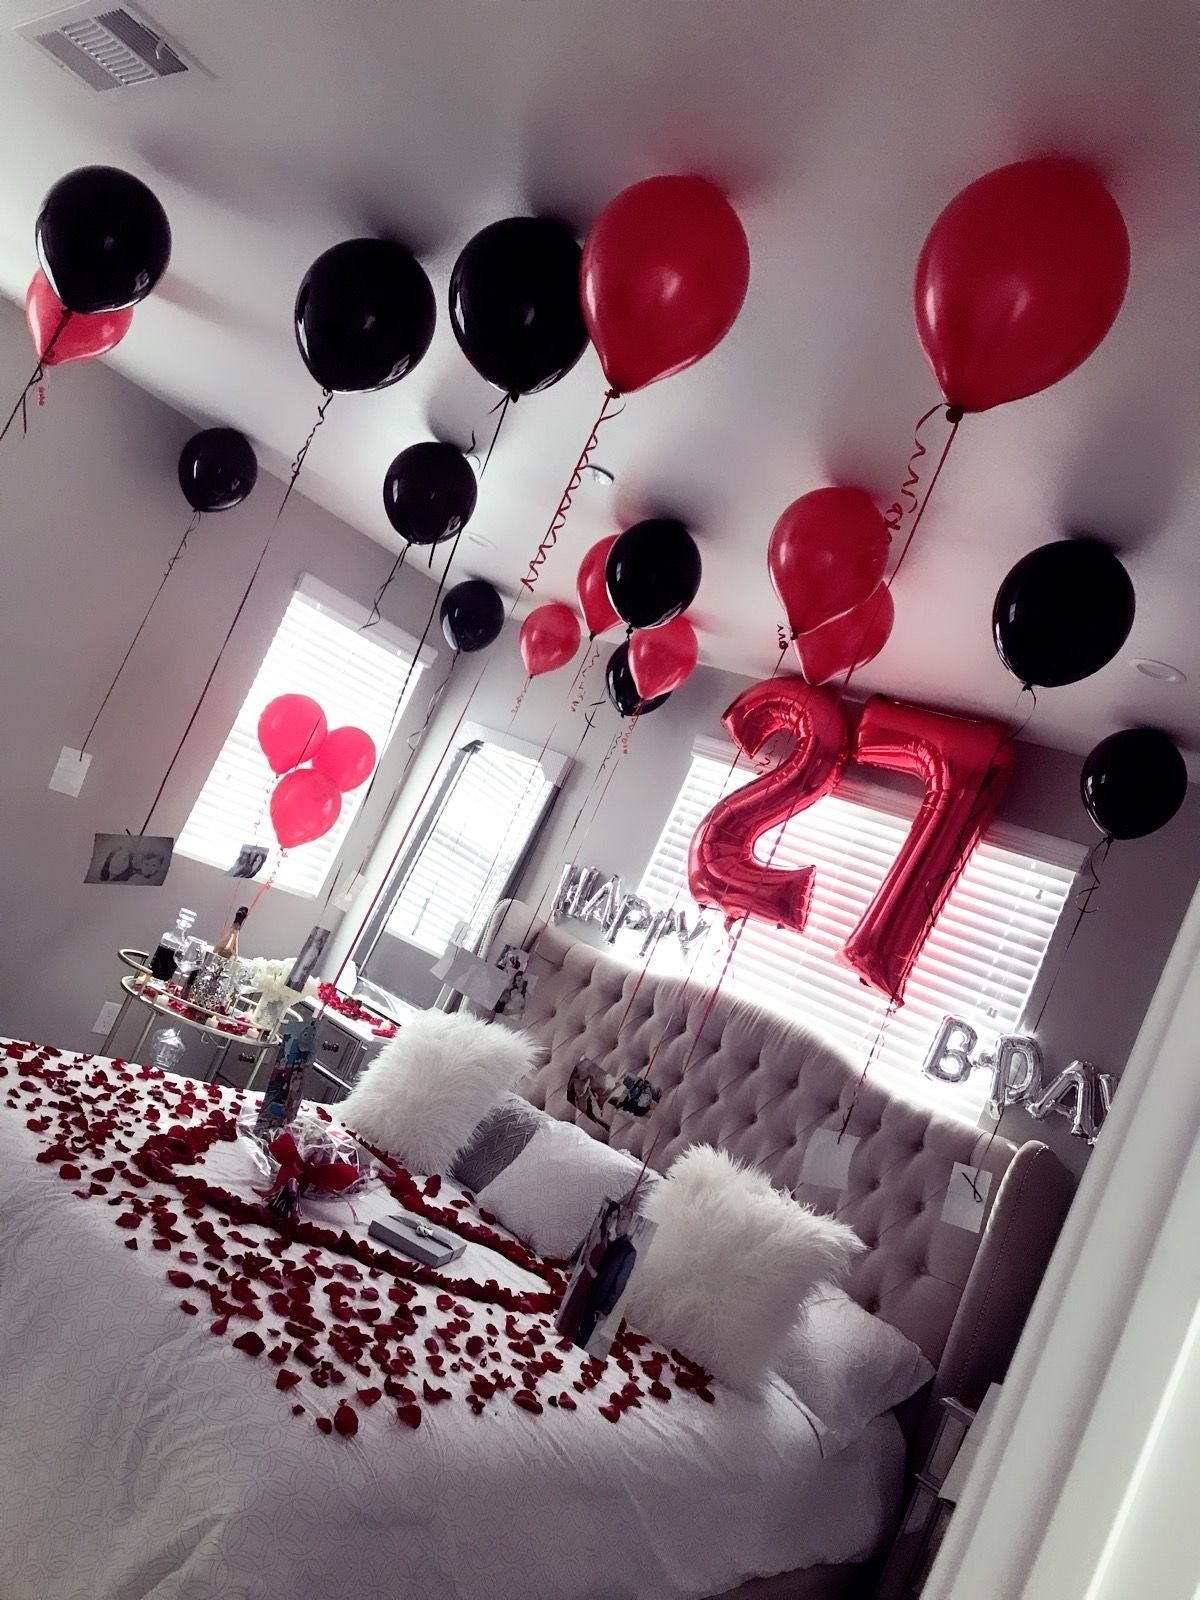 Birthday decoration for husband for party di 2020 dengan